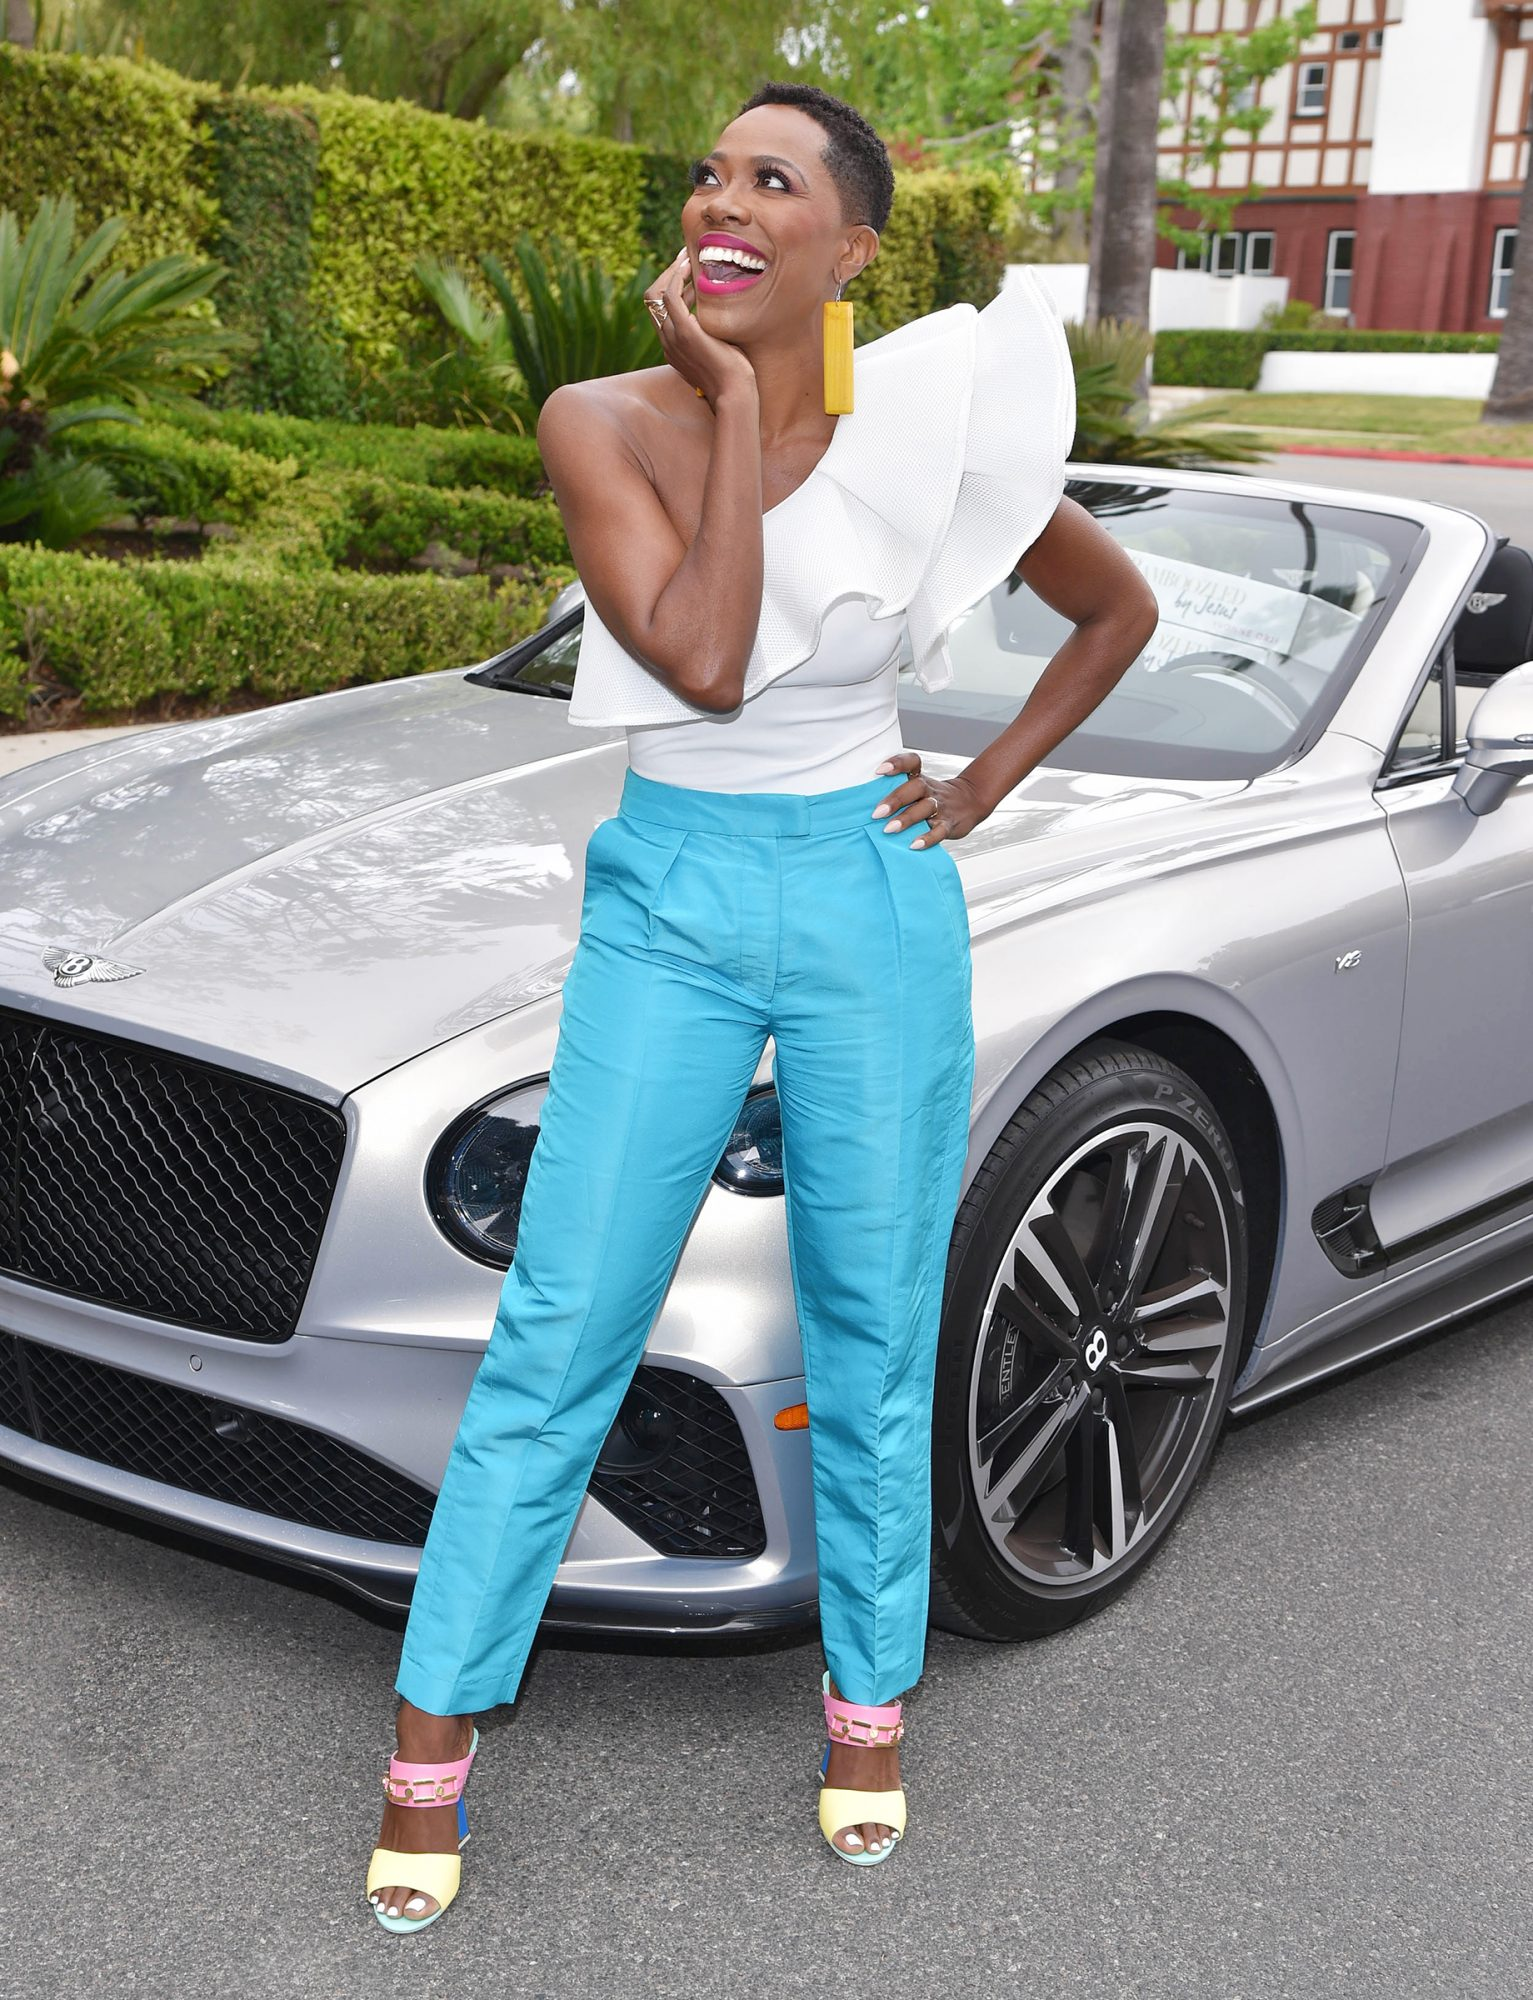 Yvonne Orji Delivers New Book Bamboozled by Jesus To Friends In Silver Bentley Continental GTC V8 Convertible